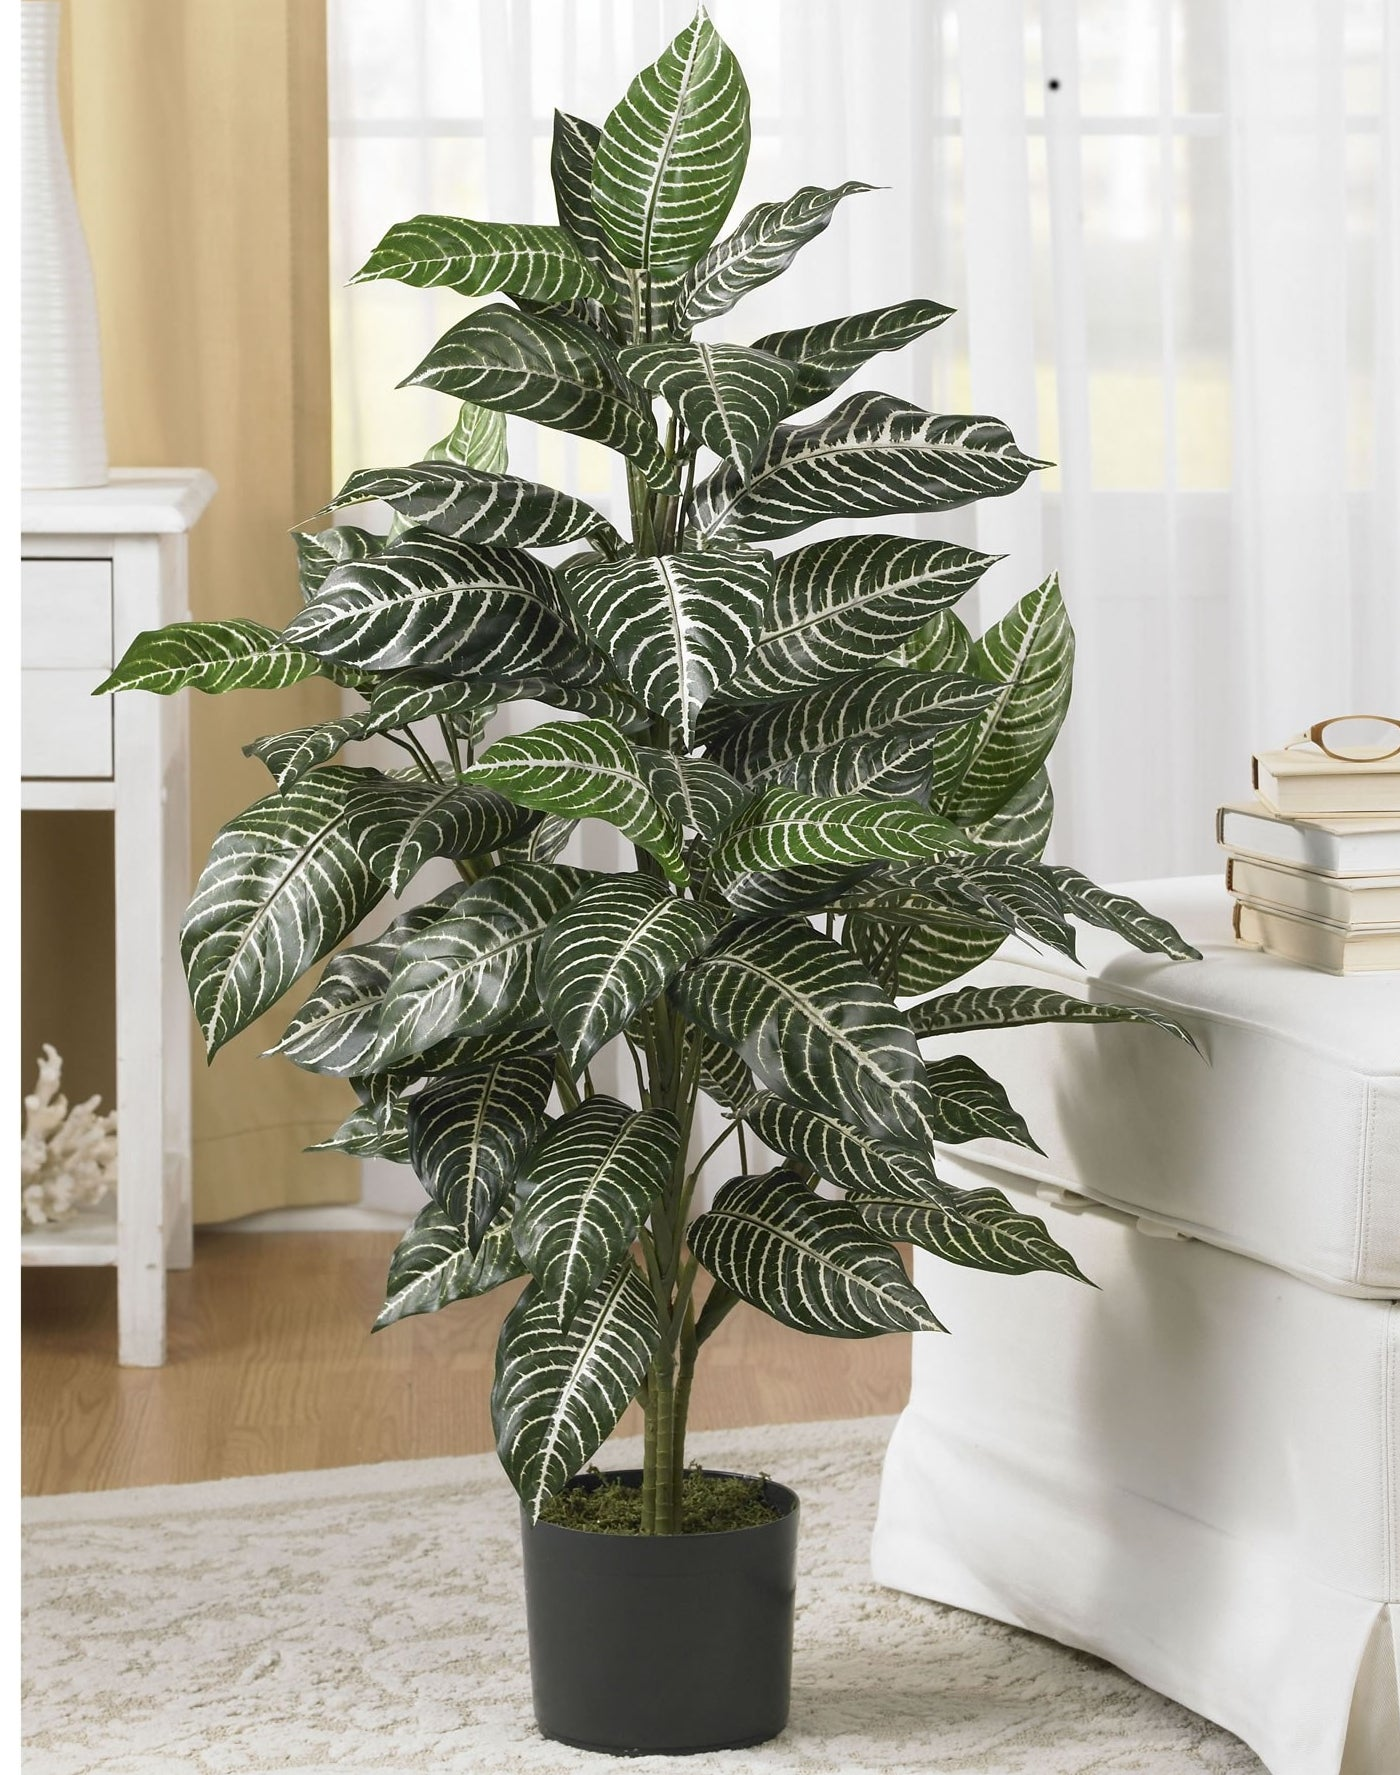 The zebra plant placed in a white living room